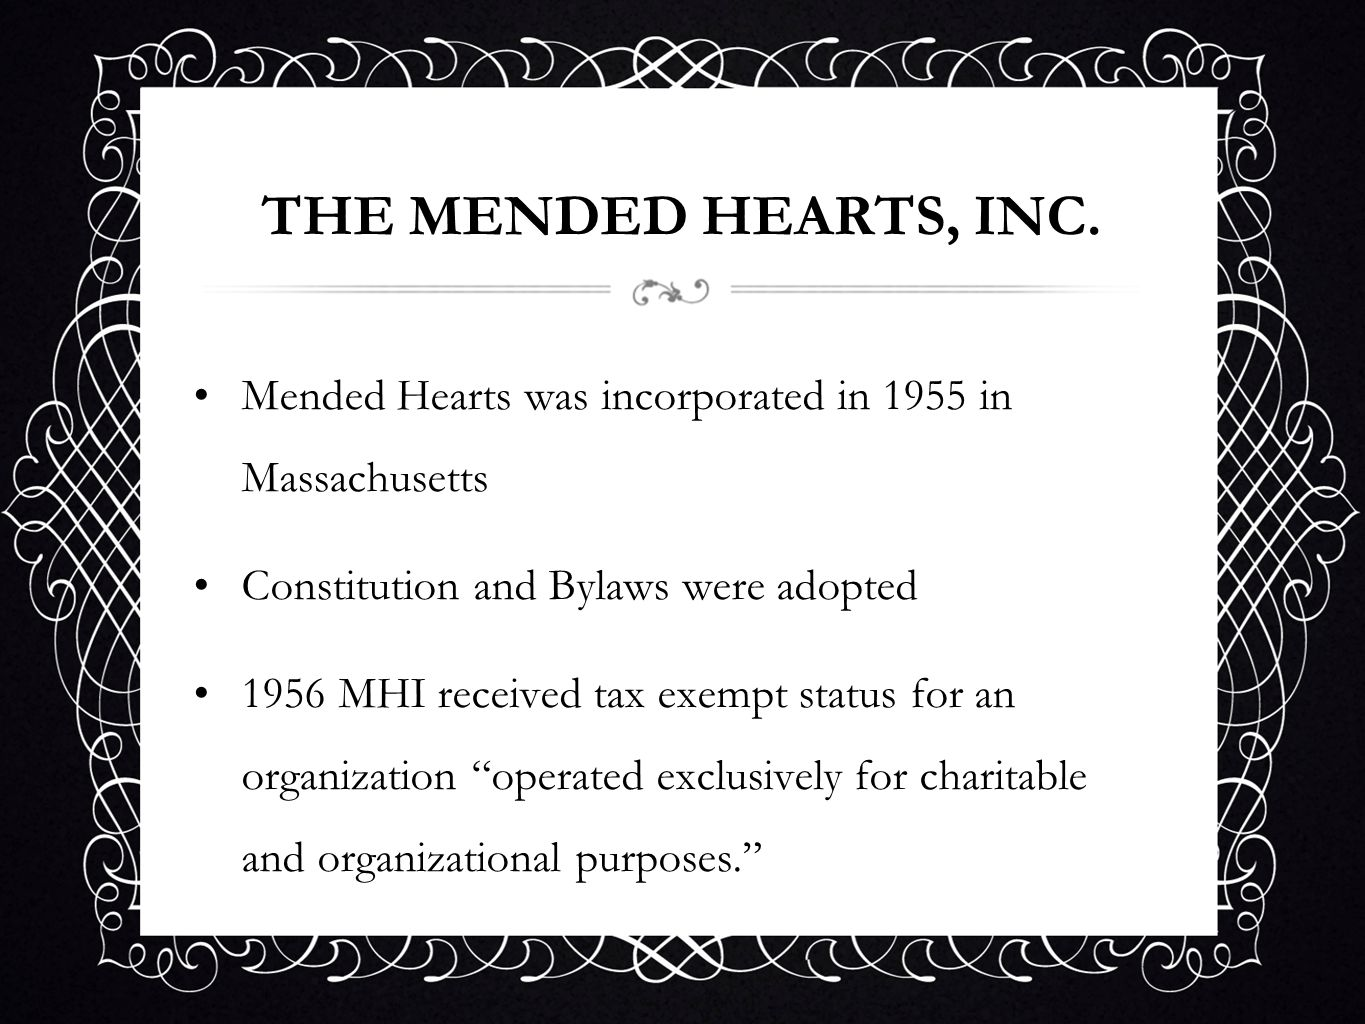 THE MENDED HEARTS, INC. Mended Hearts was incorporated in 1955 in Massachusetts. Constitution and Bylaws were adopted.